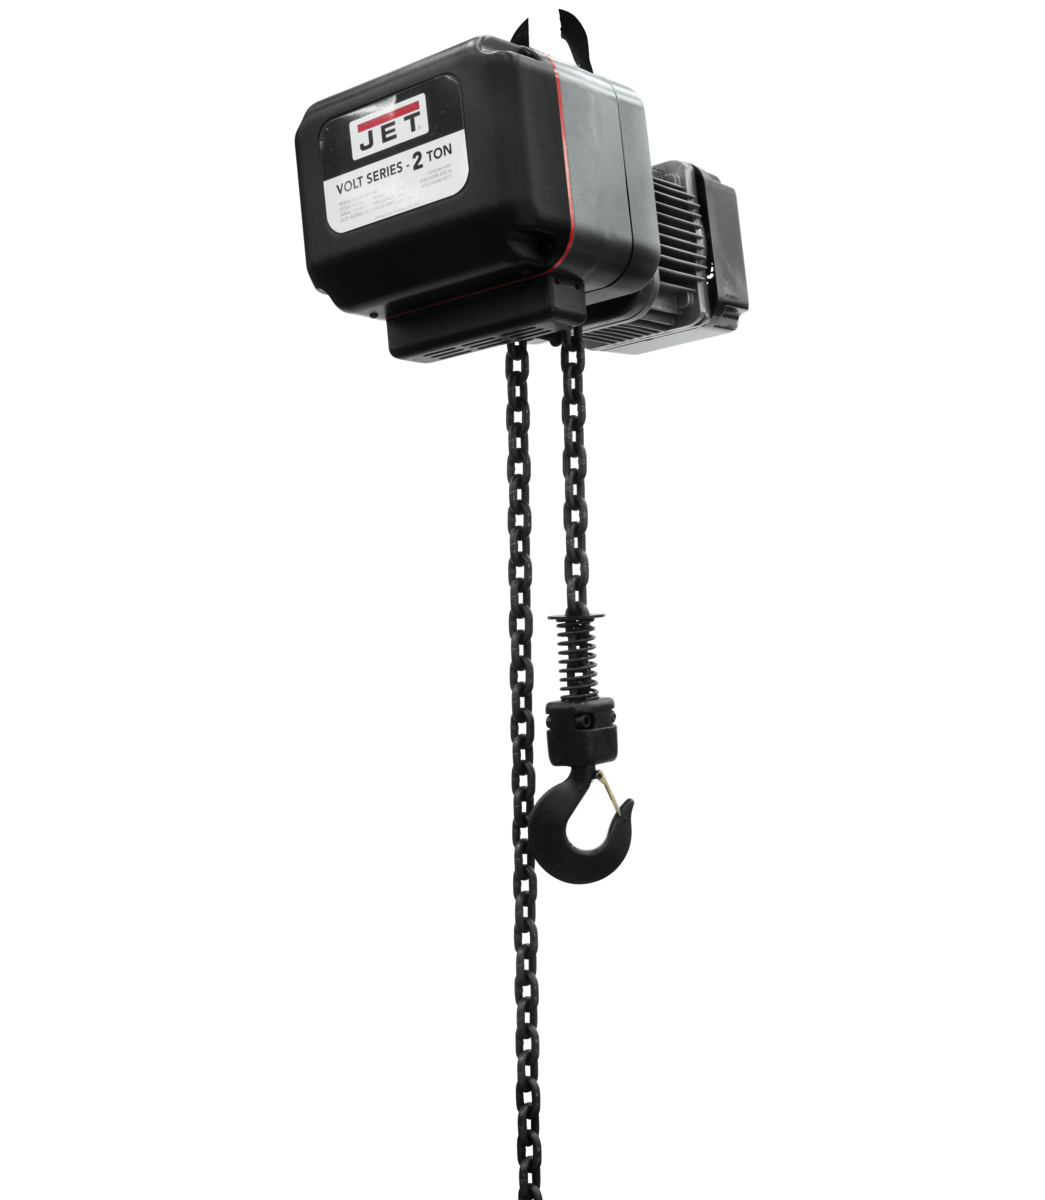 VOLT 2T VARIABLE-SPEED ELECTRIC HOIST 3PH 460V 20' LIFT